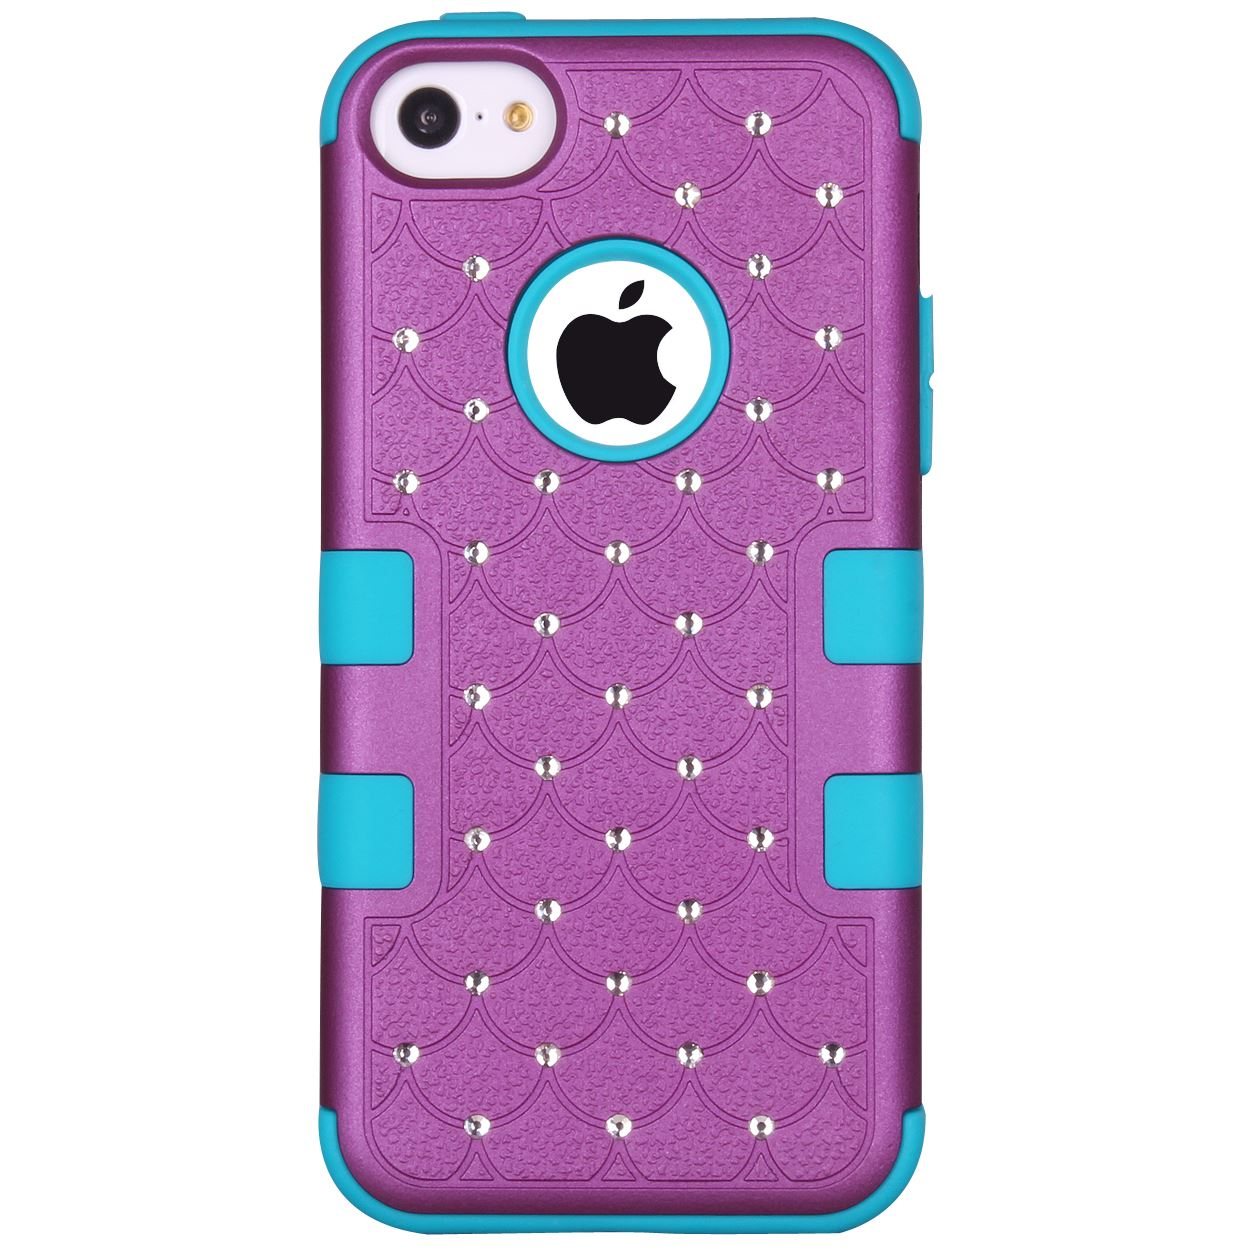 Affordable Cute 3D Animal Cases for iPhone 5C to protect your beloved new iPhone 5C in a good condition, without any possible harm!